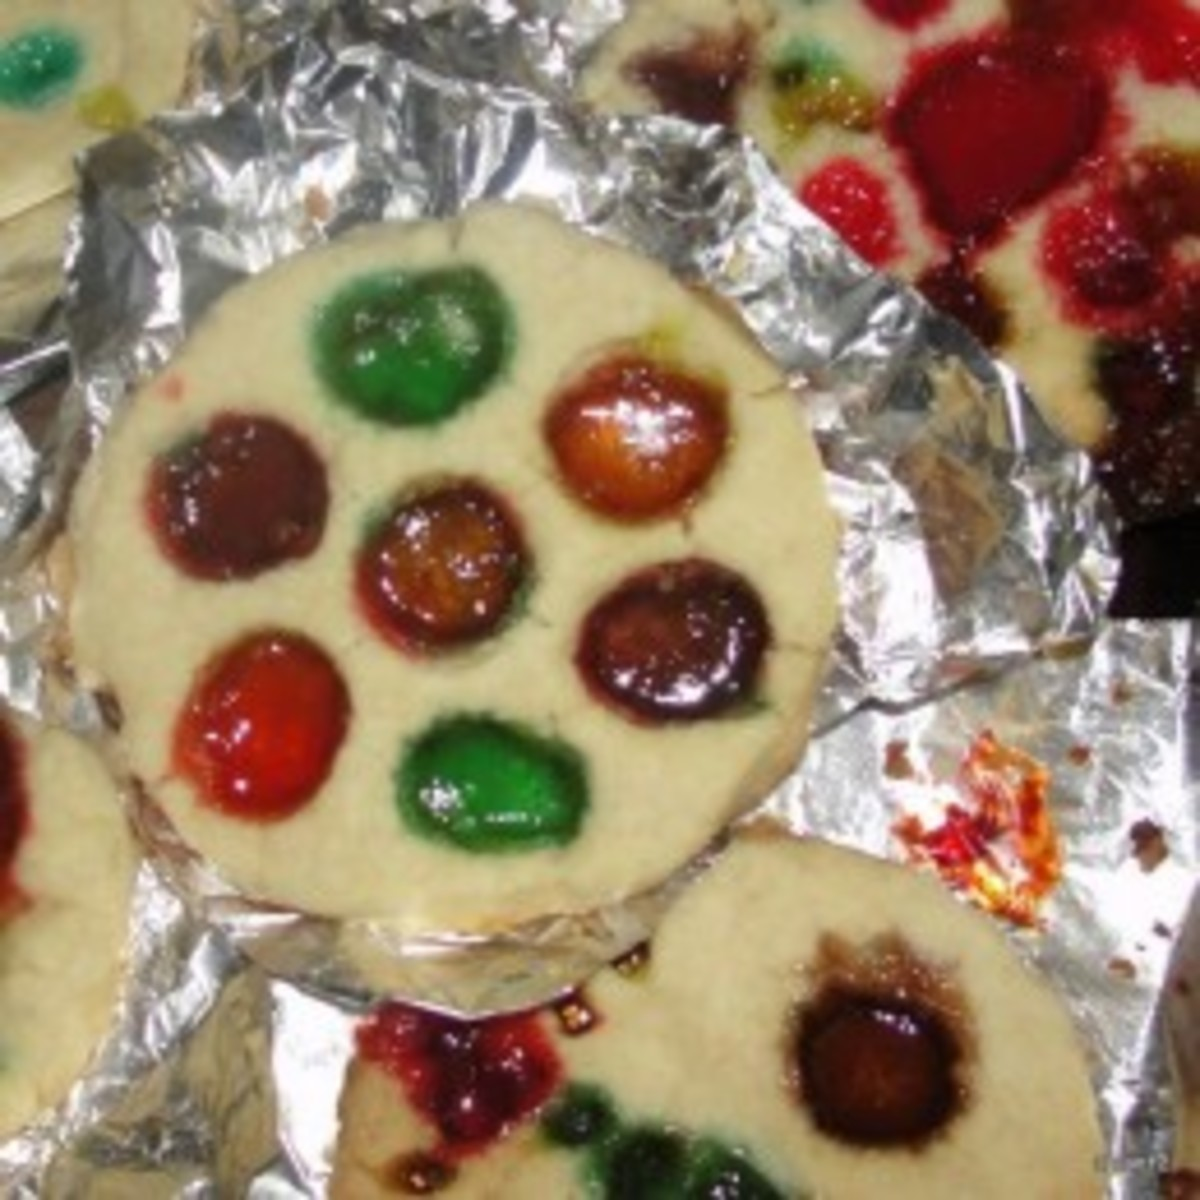 Stained glass window cookies made in the lesson on Medieval Art